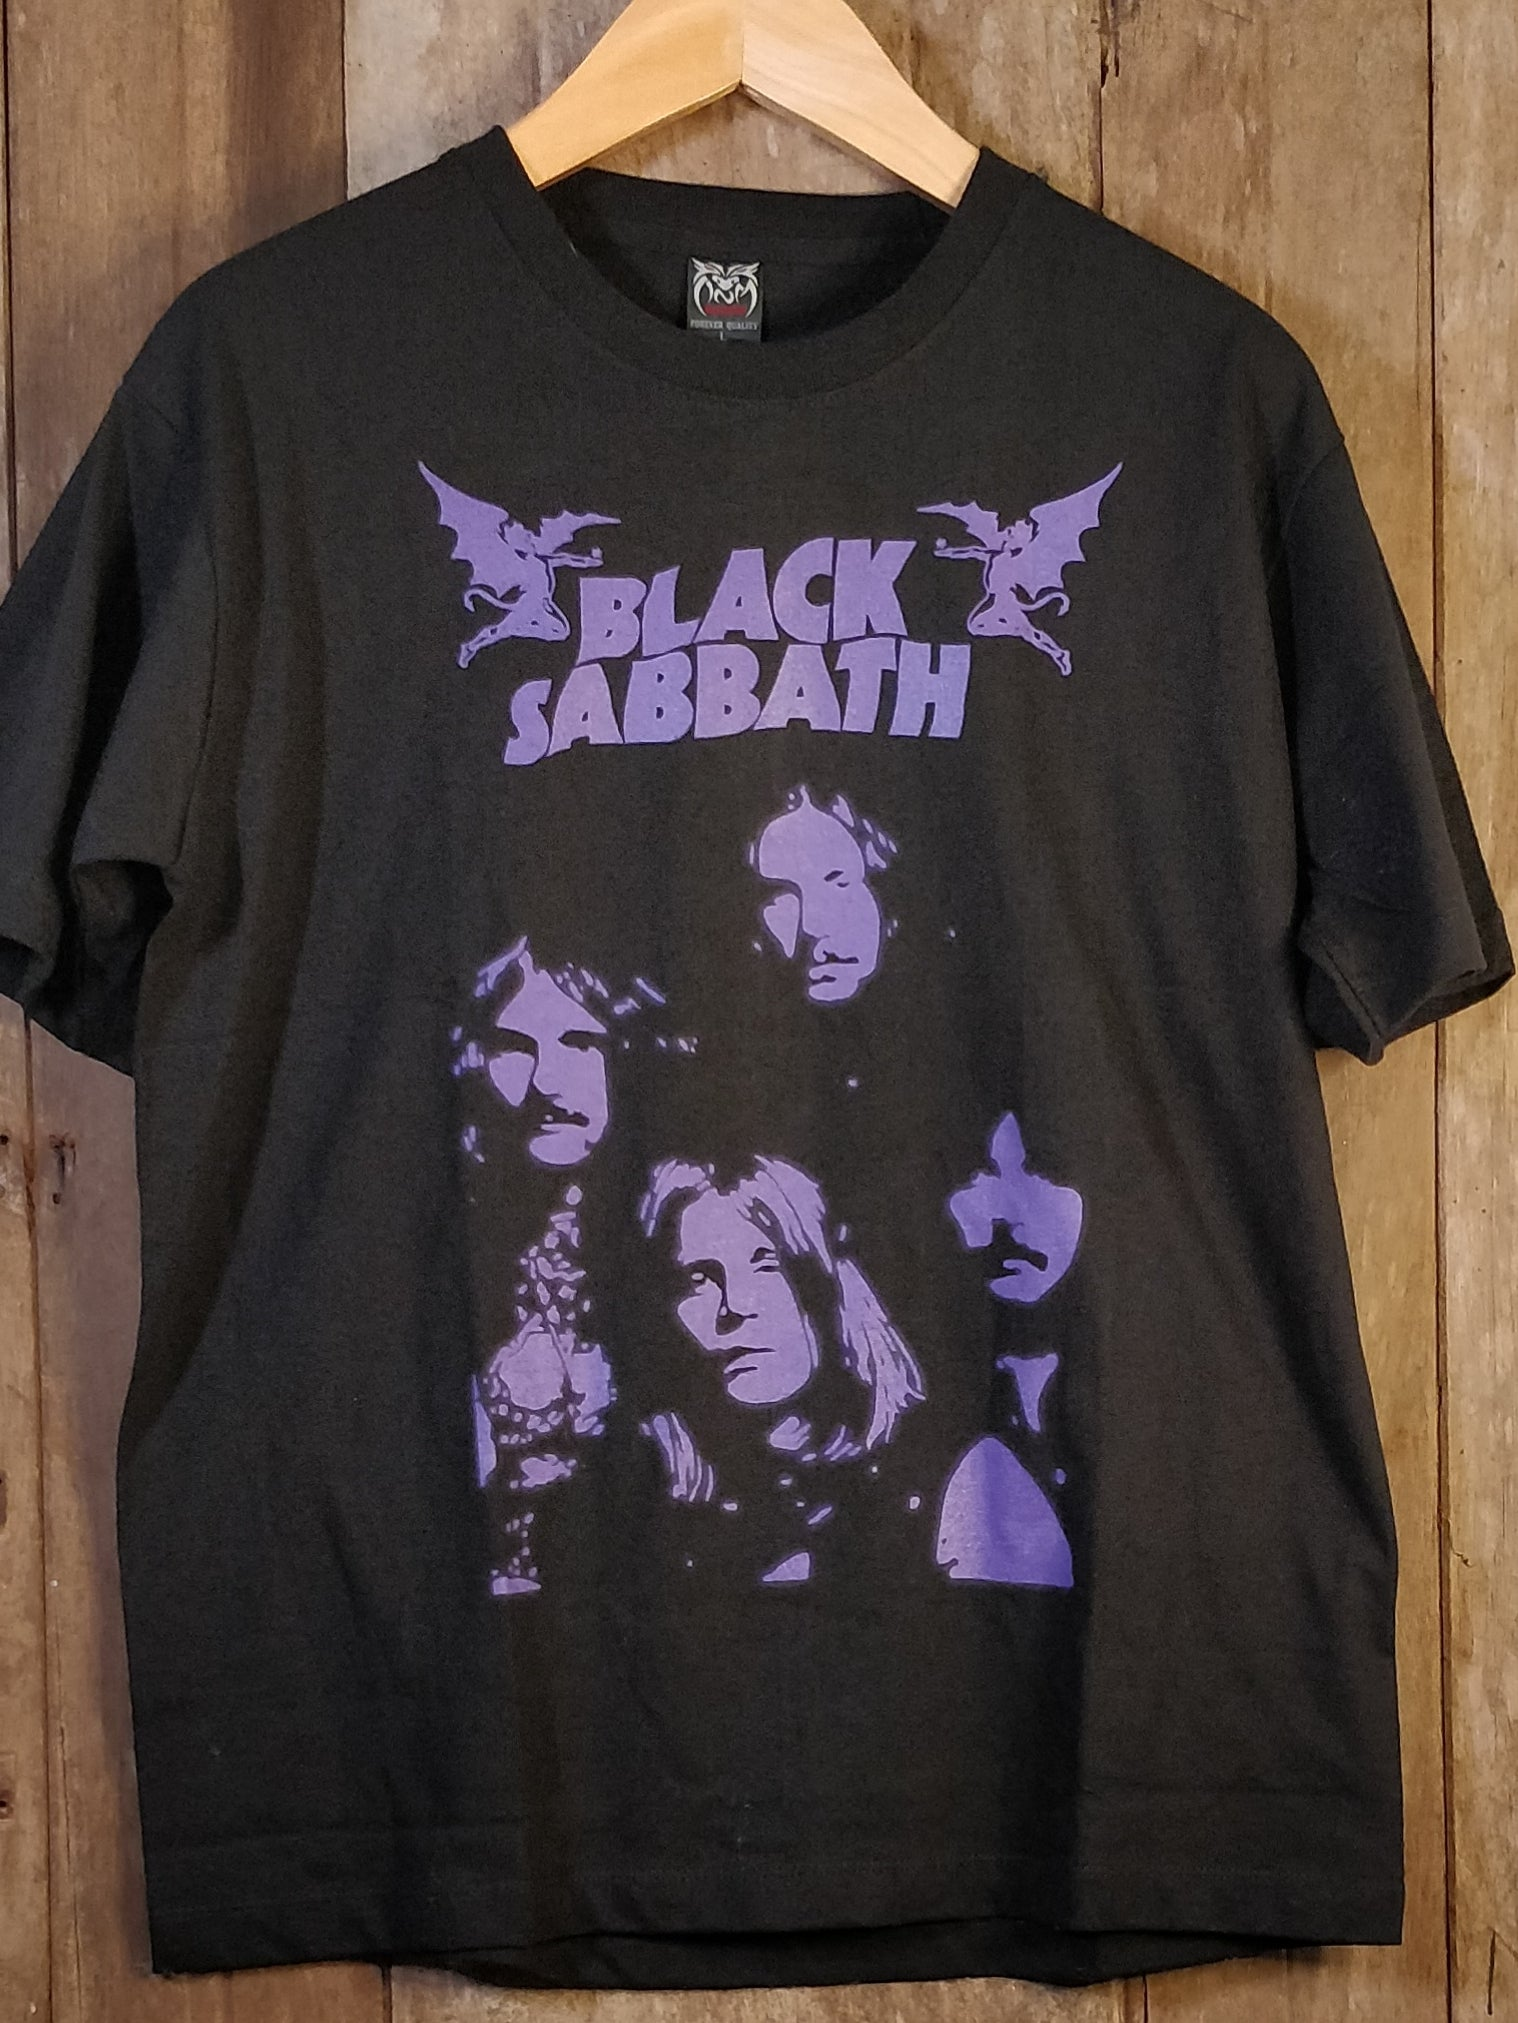 BLACK SABBATH 100% Cotton New Vintage Band T Shirt